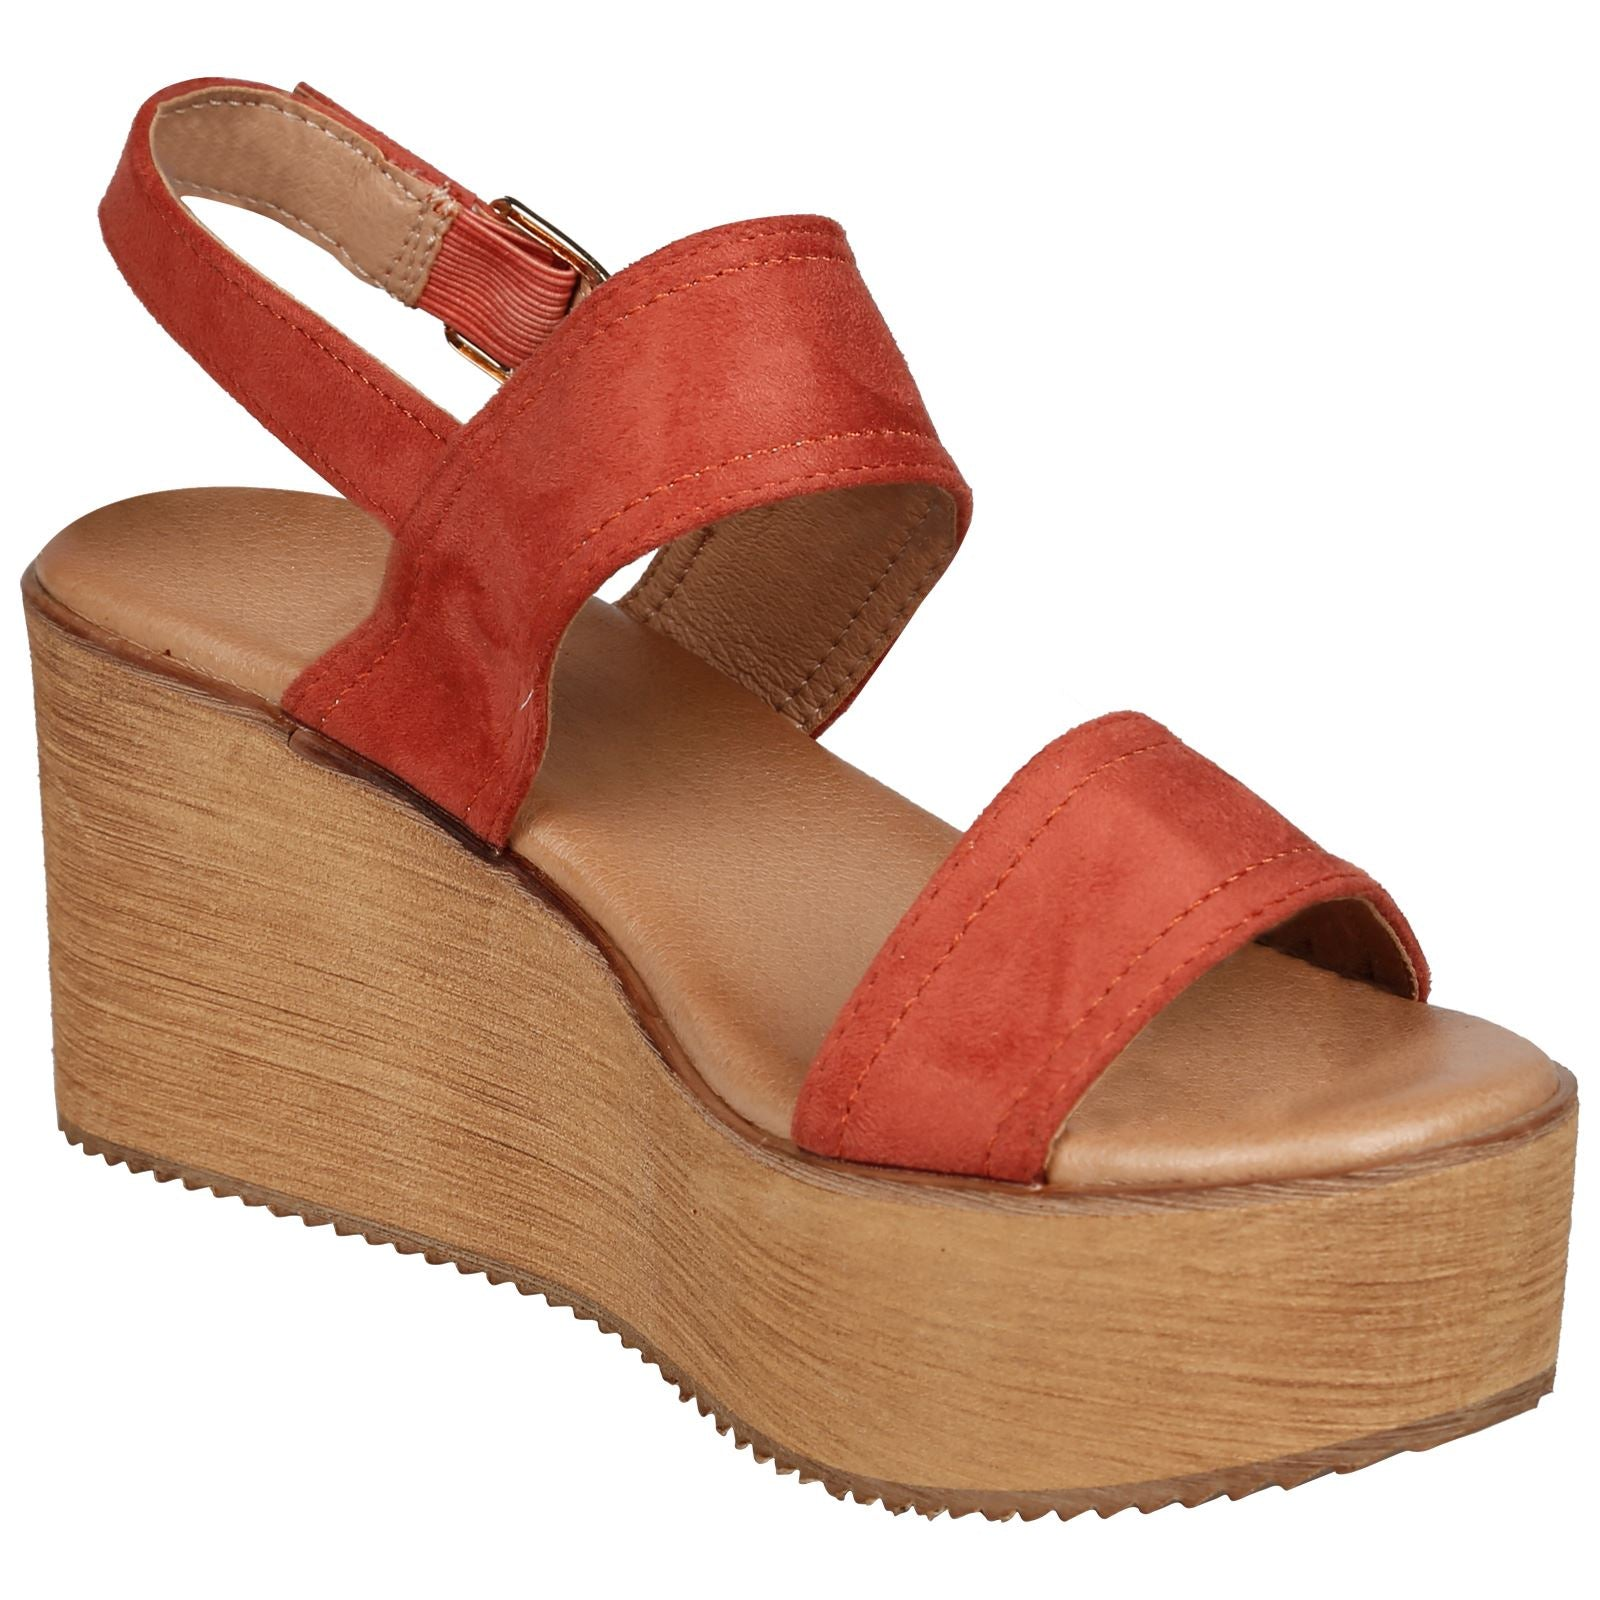 Darby Womens Platform Wedge Sandals in Orange Faux Suede